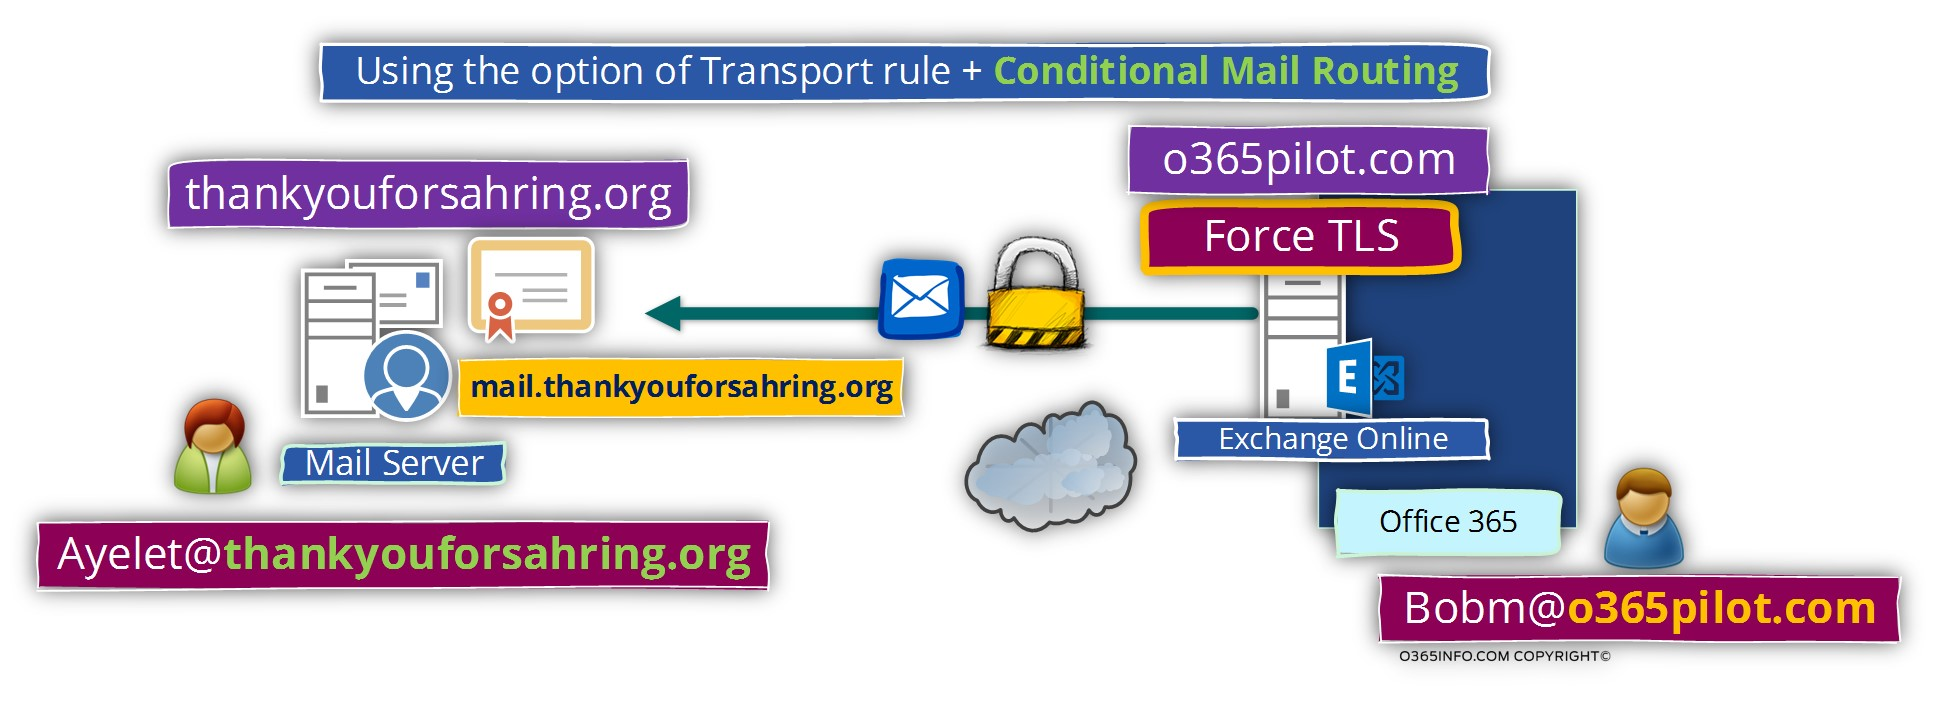 Using the option of Transport rule and Conditional Mail Routing